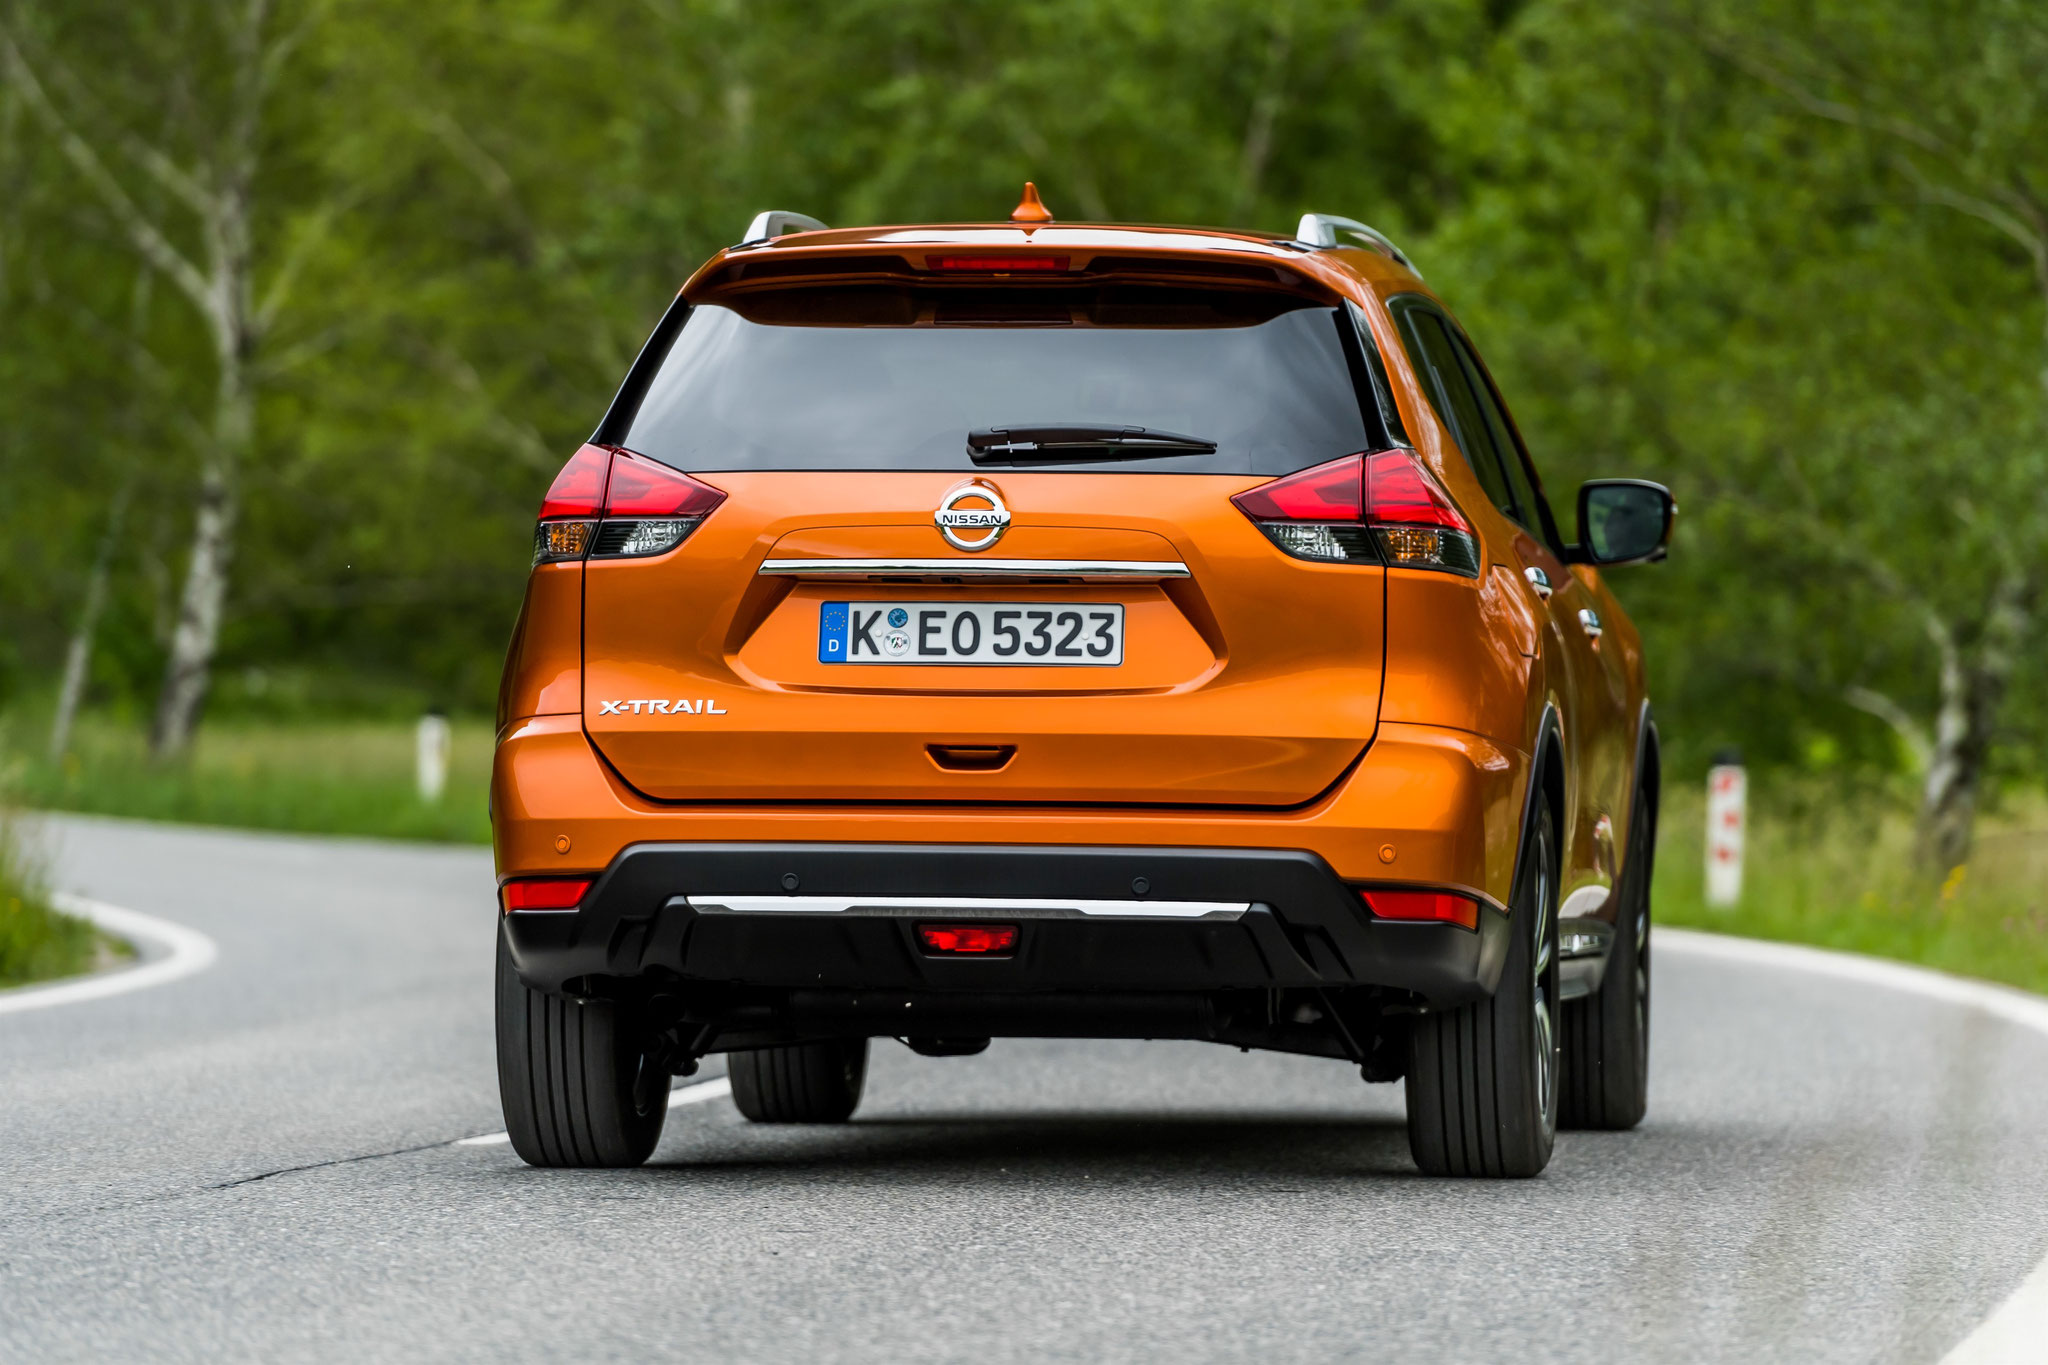 X-trail orange colorado version Tekna